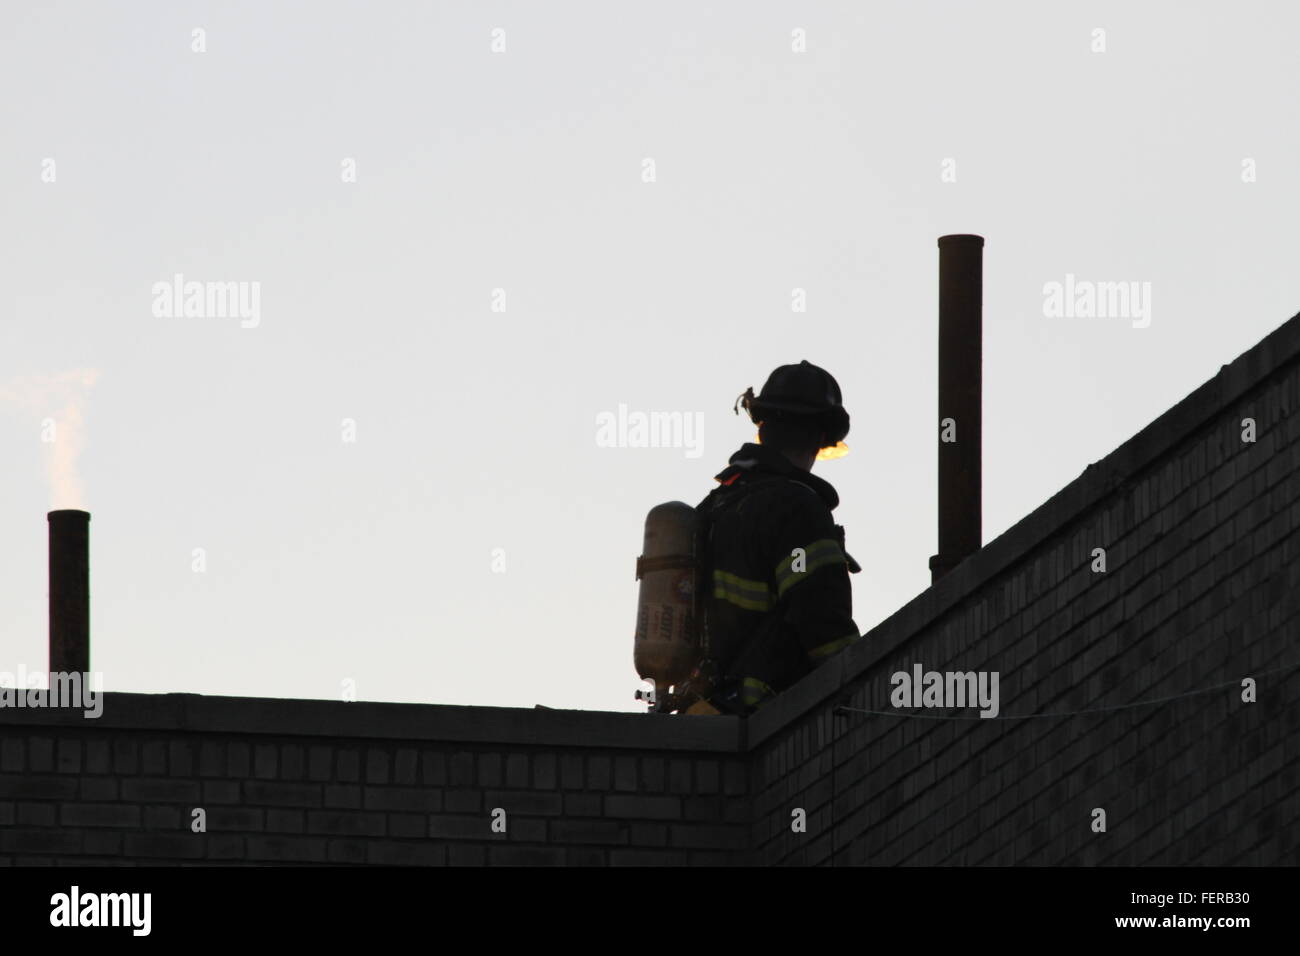 Rear View Of Fireman In Protective Suit - Stock Image